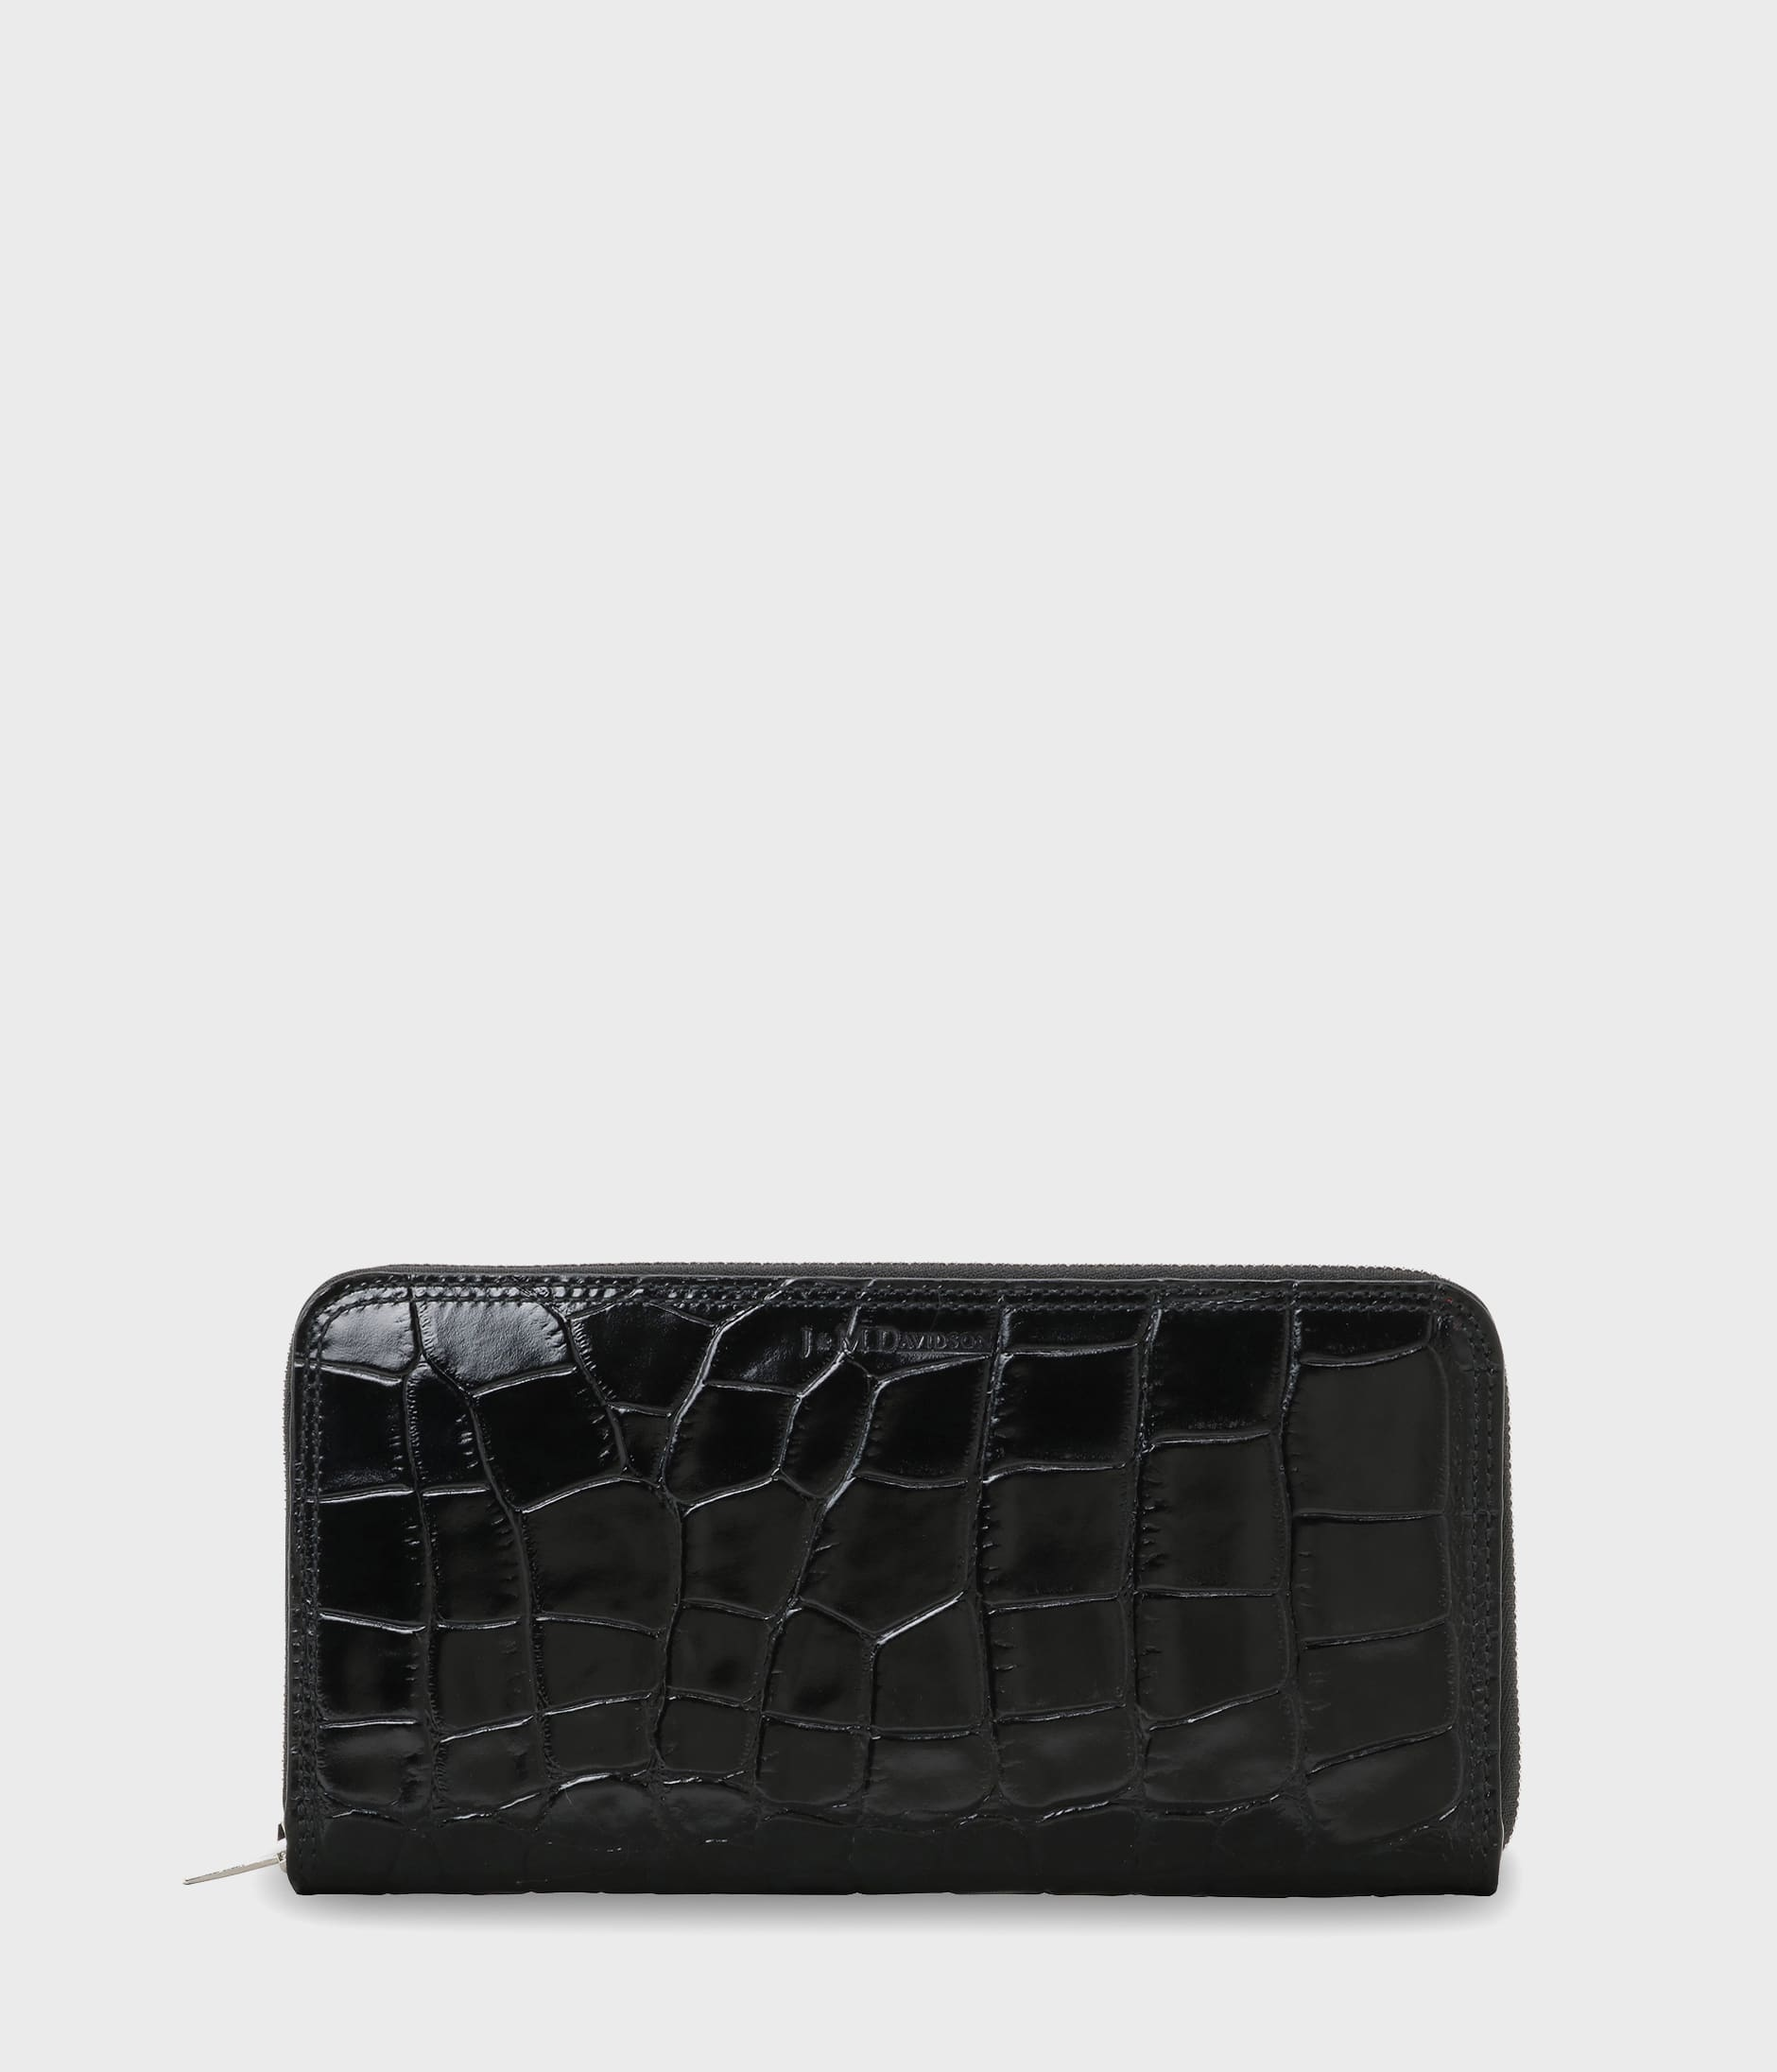 ZIP AROUND WALLET 詳細画像 BLACK 1